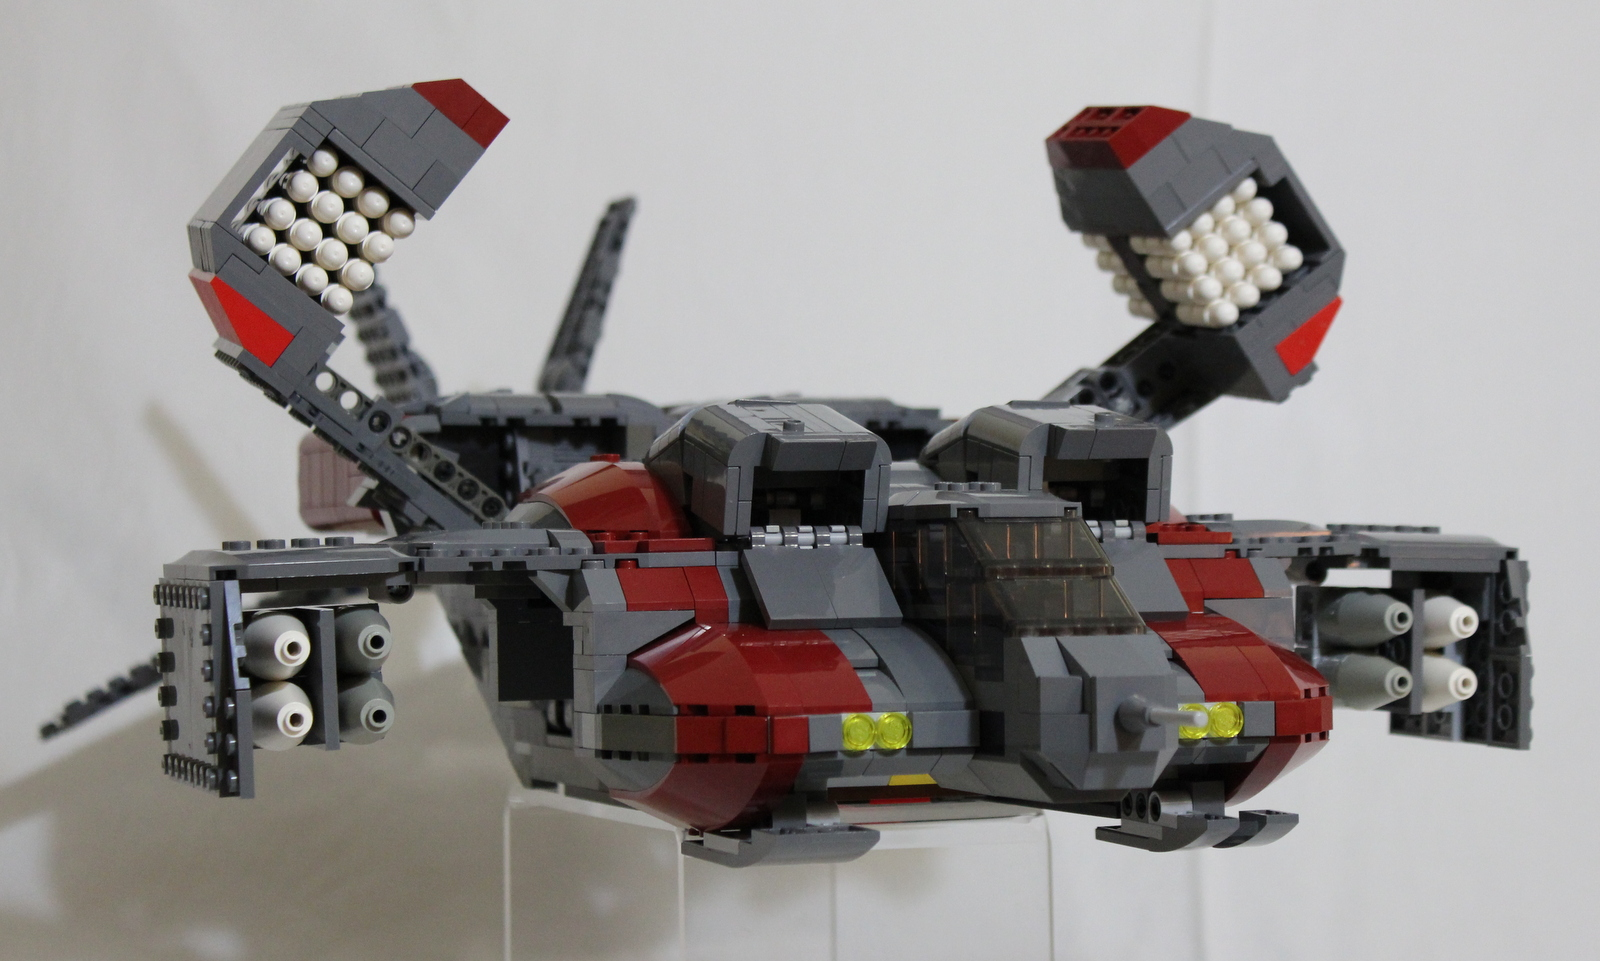 Dropship from Aliens